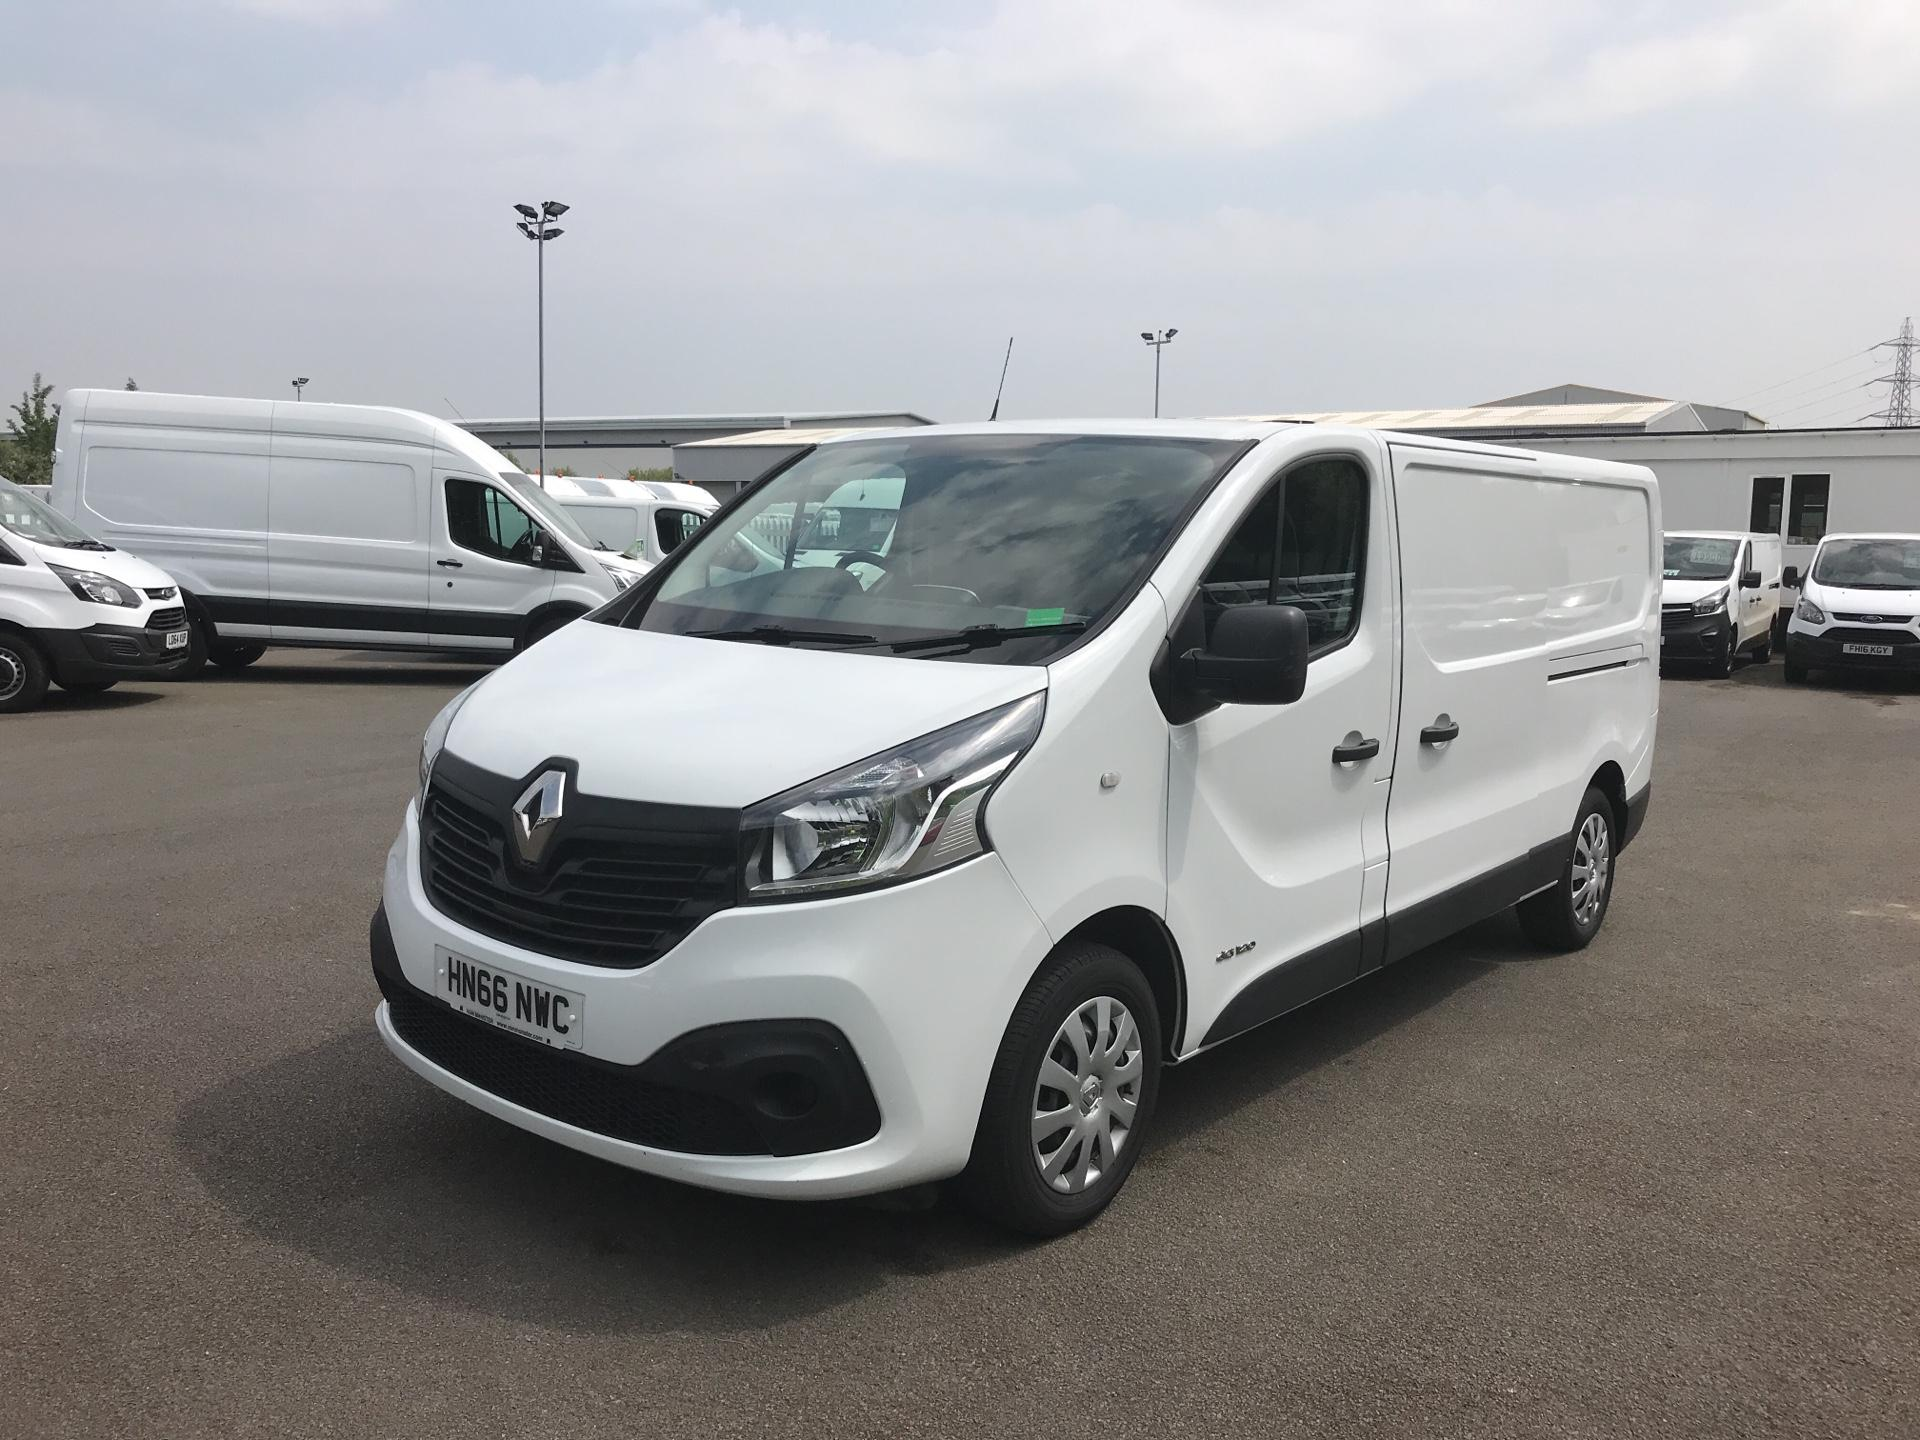 2016 Renault Trafic Ll29 Dci 120 Business+ Van EURO 5 (HN66NWC) Image 7